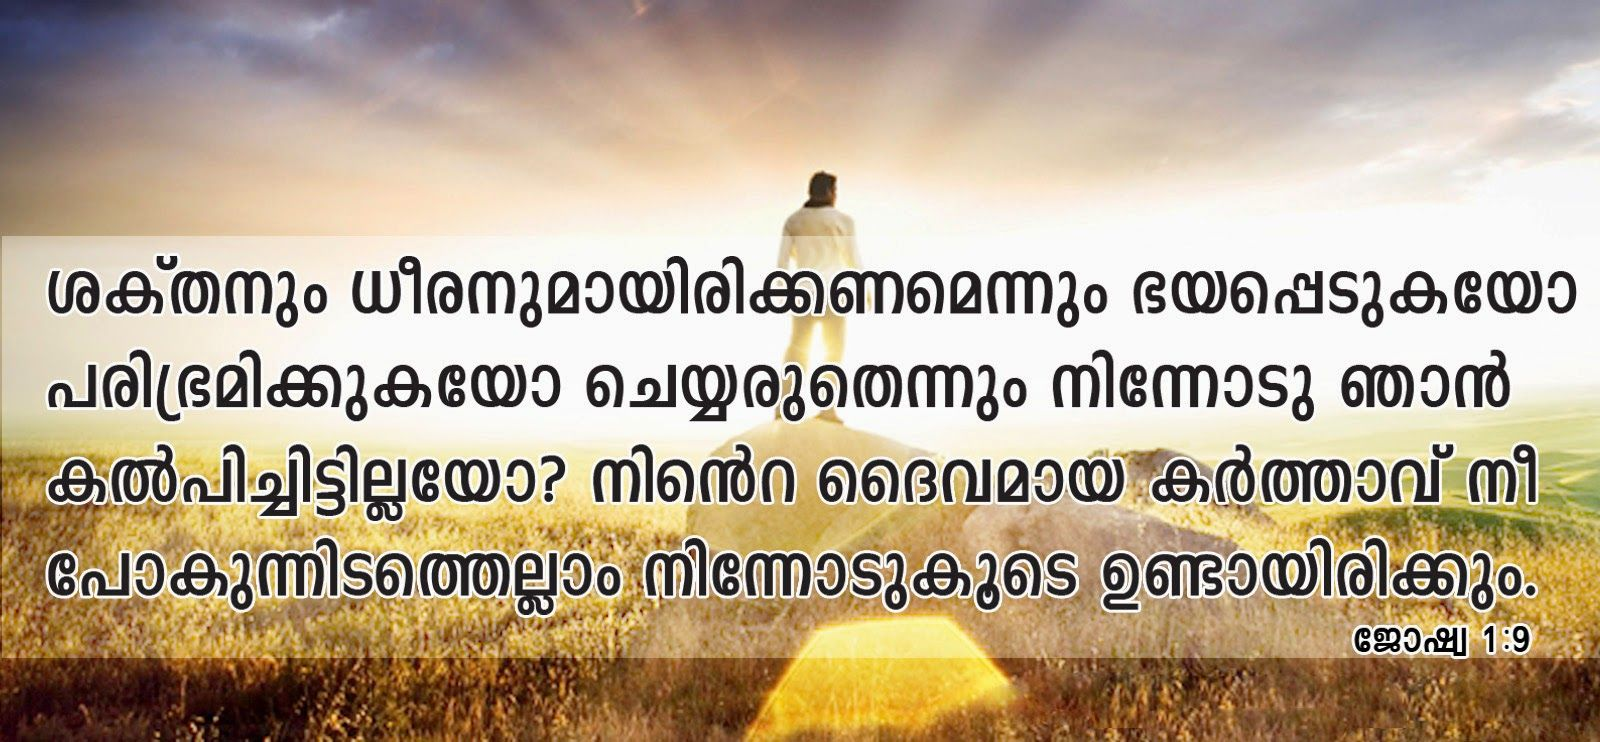 MALAYALAM BIBLE QUOTES | malayalam quotes | Pinterest ...